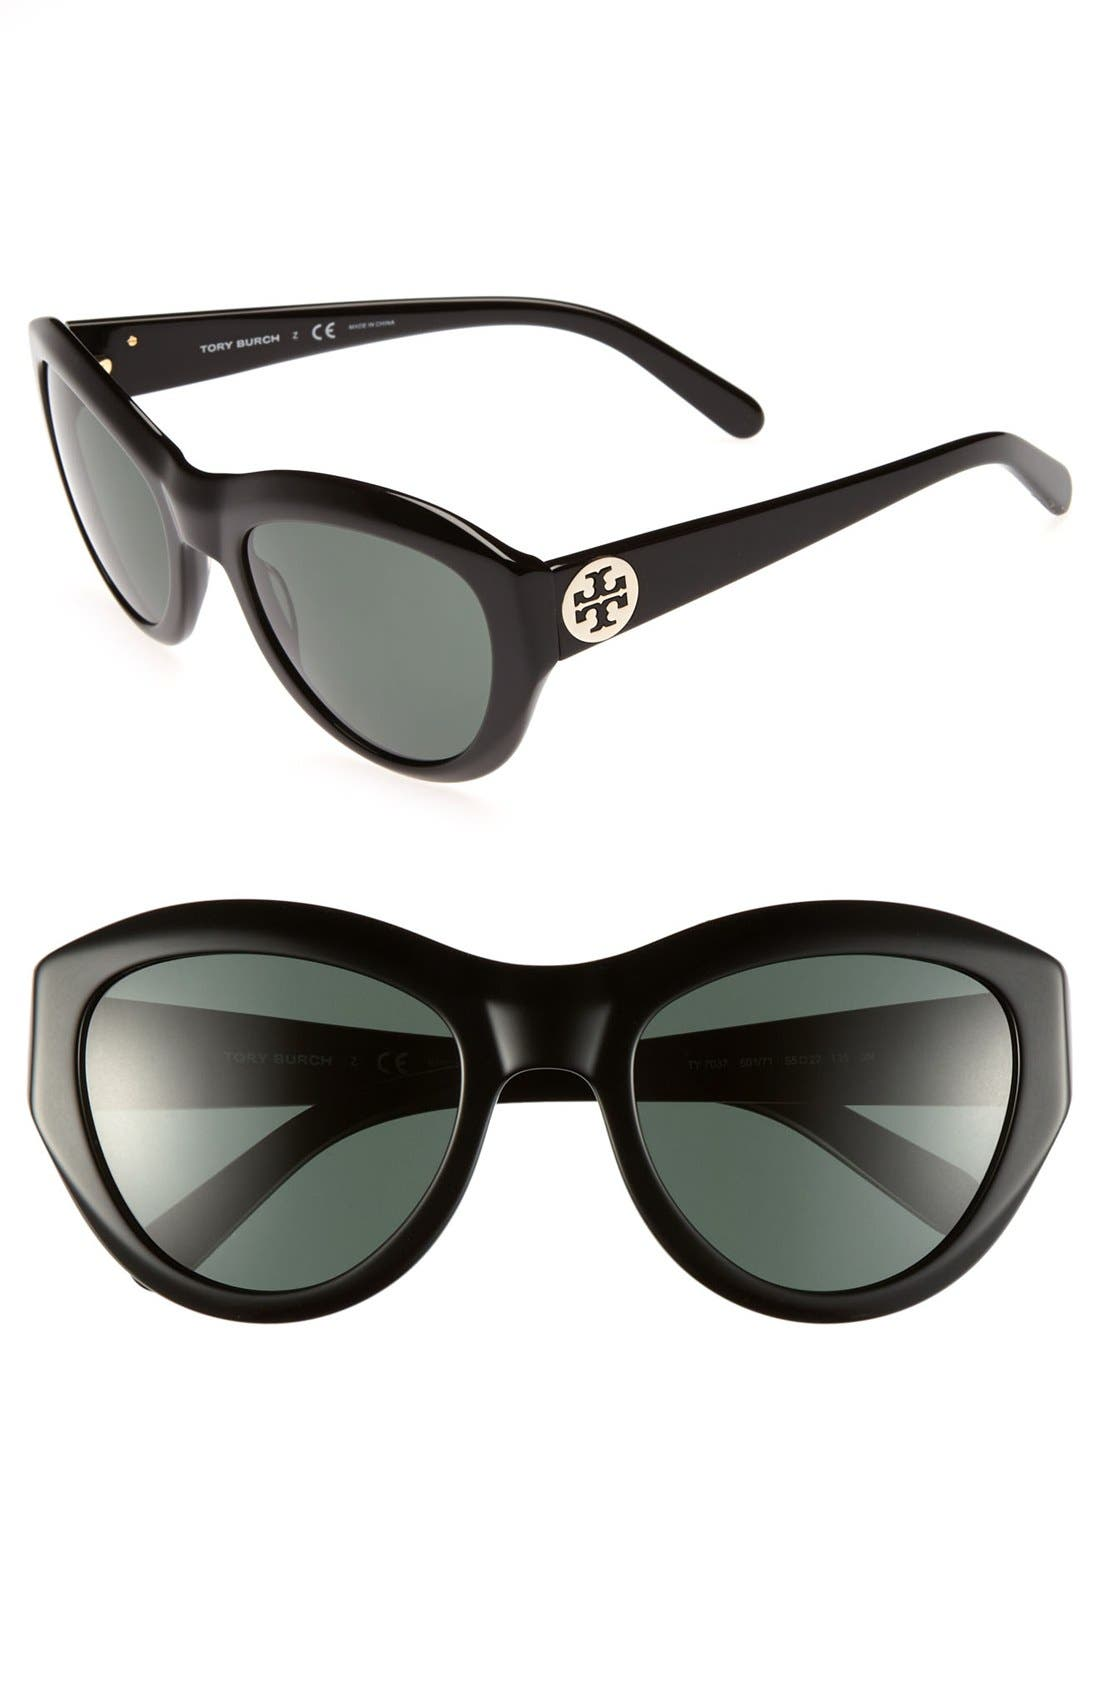 Alternate Image 1 Selected - Tory Burch 55mm Retro Sunglasses